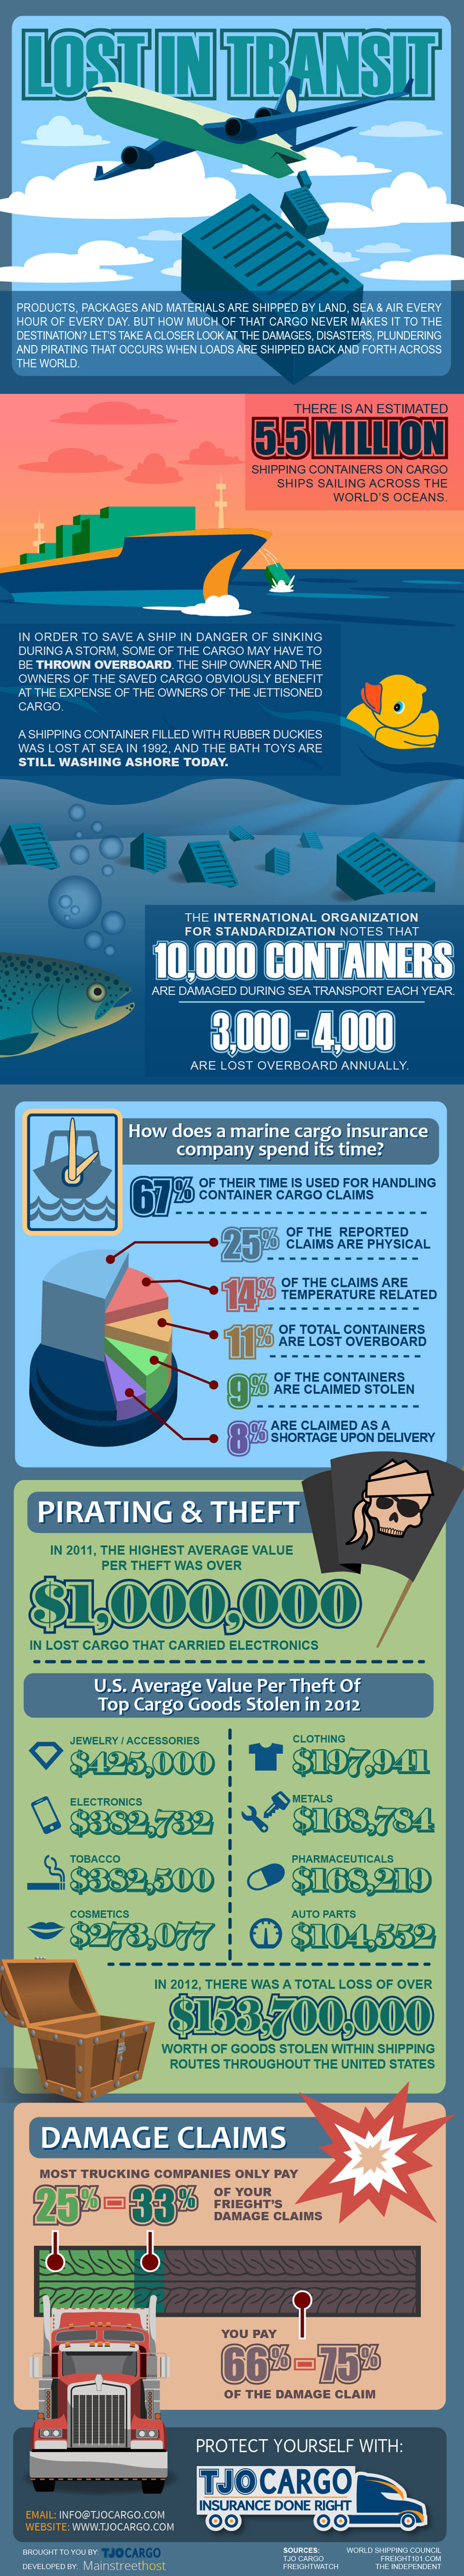 TJO Cargo - Lost in Transit - Cargo Shipping Infographic